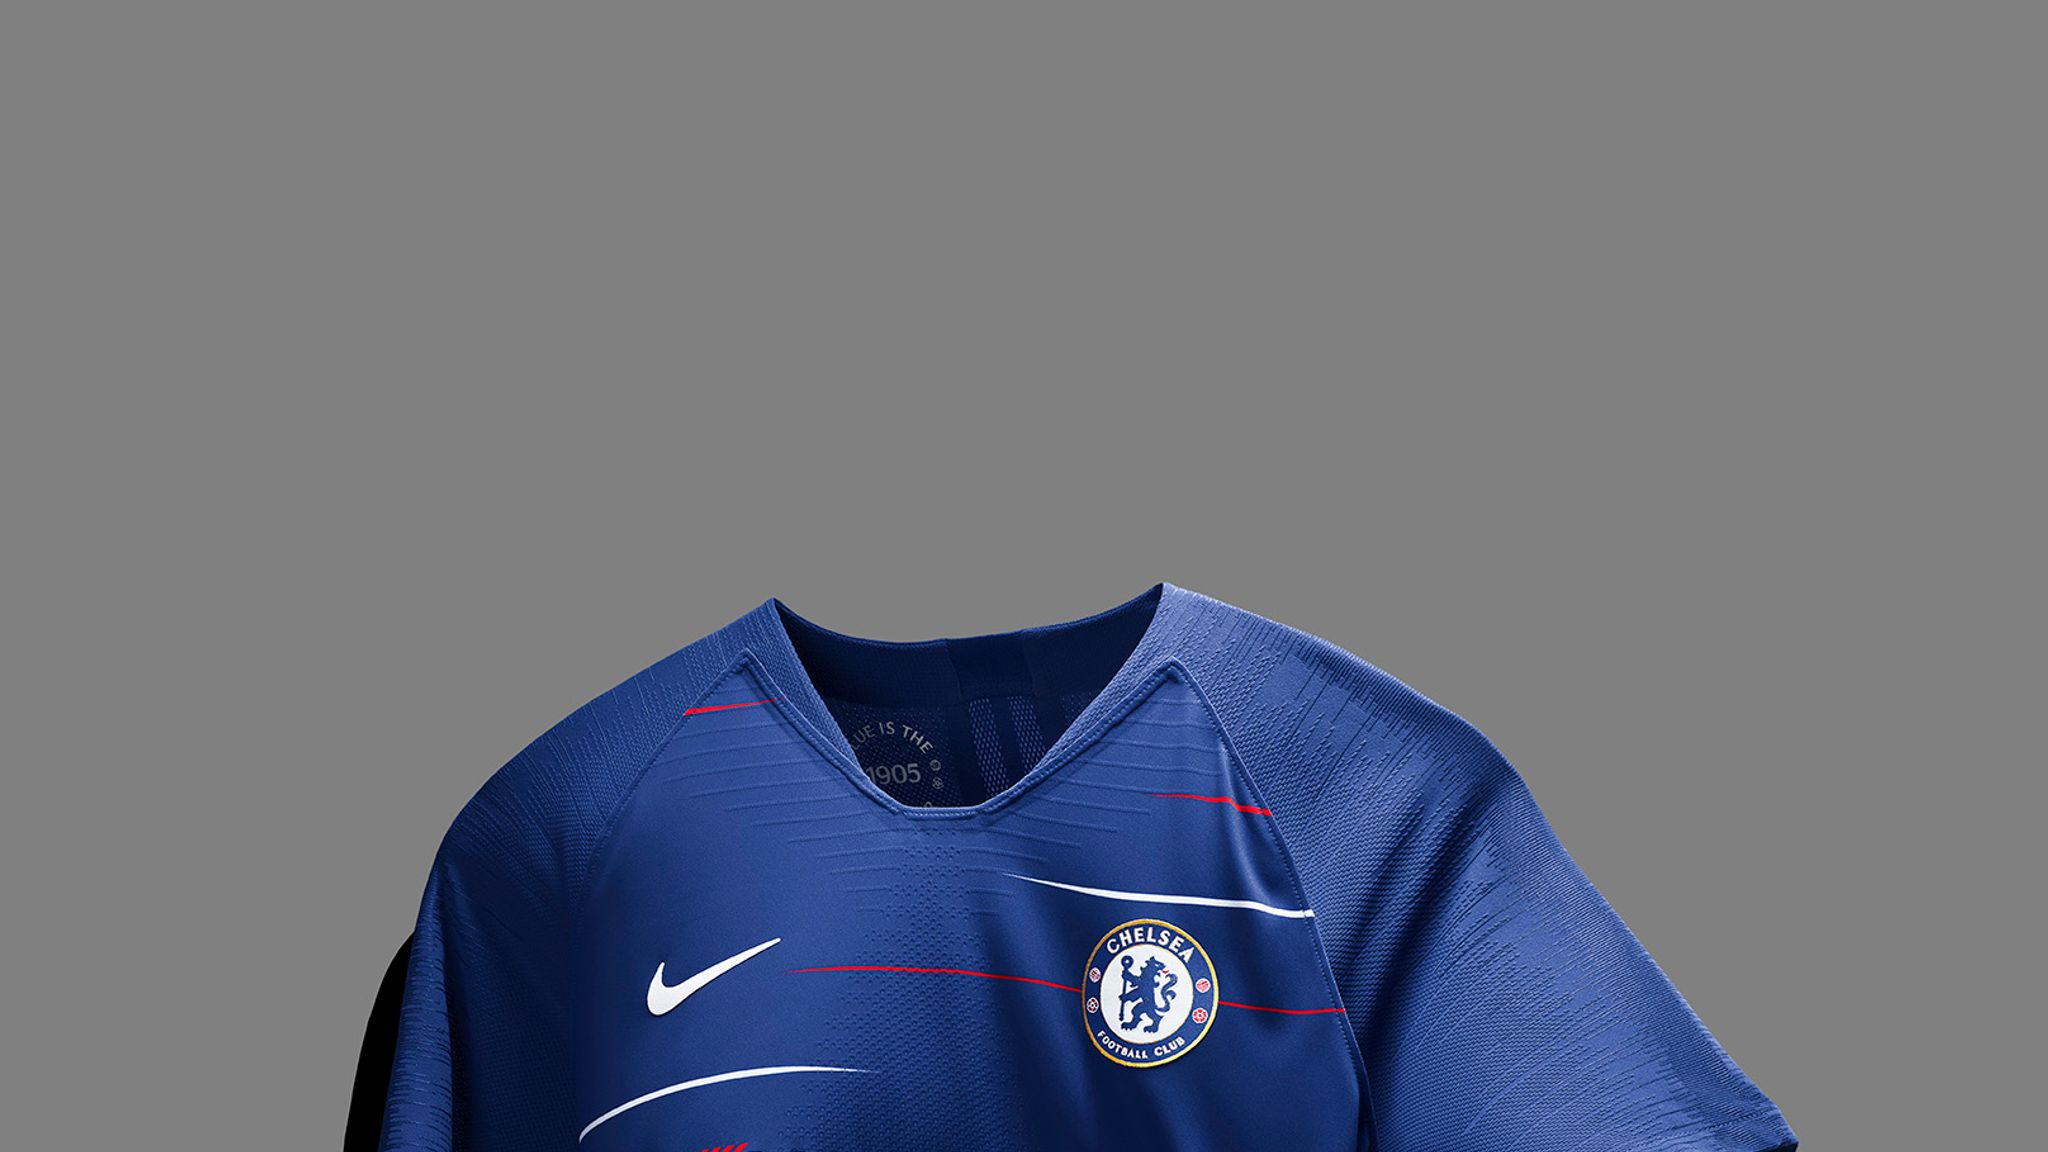 big sale ef4f3 69a9b Chelsea unveil new home kit for 2018/19 season | Football ...